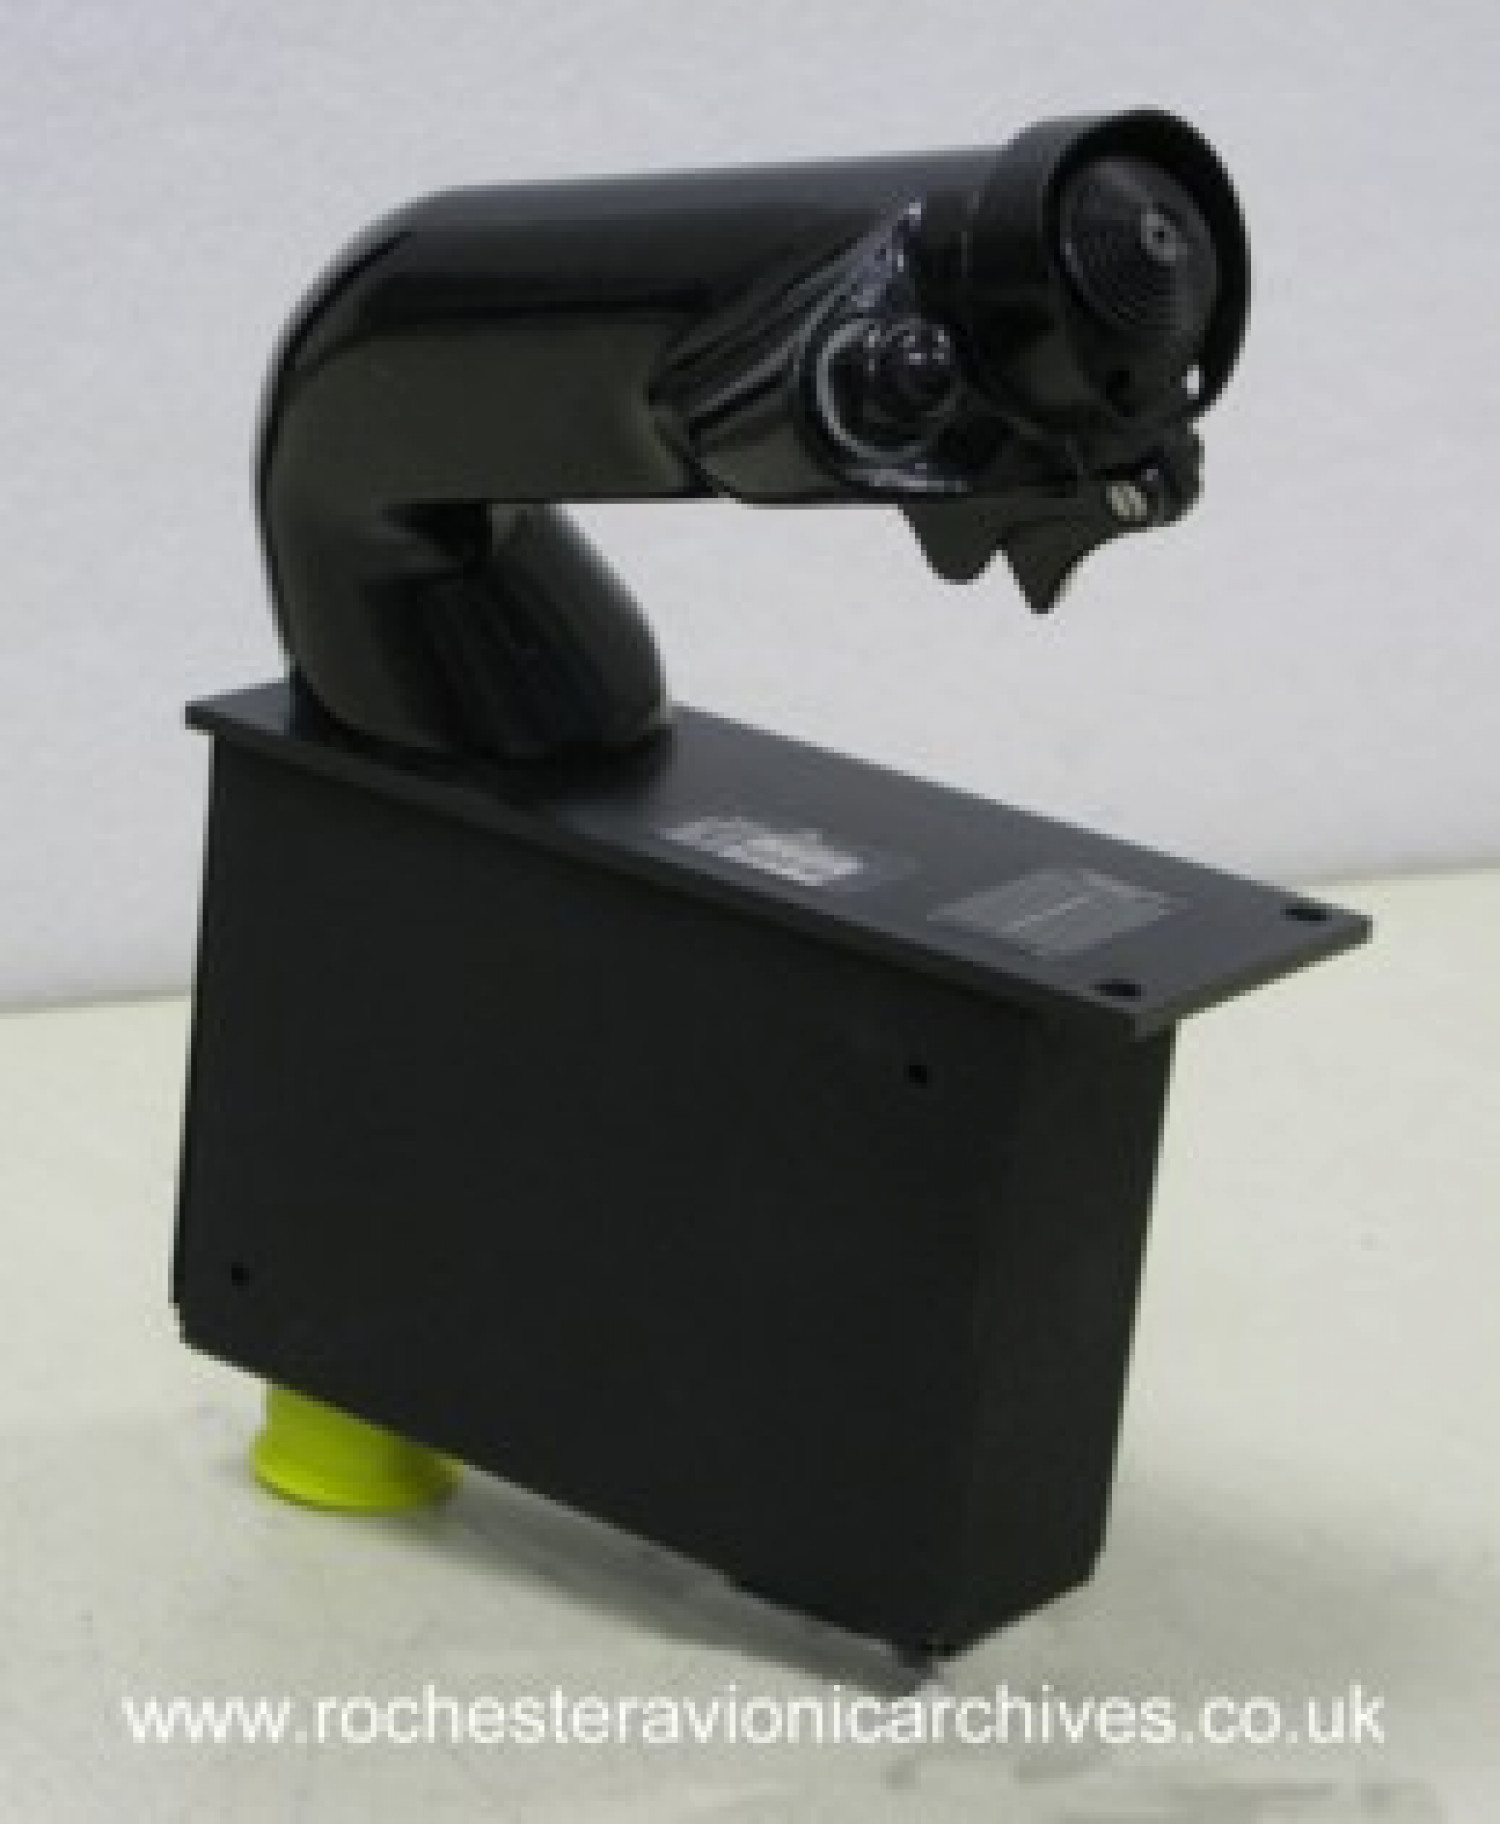 Hand Controller for Map Display